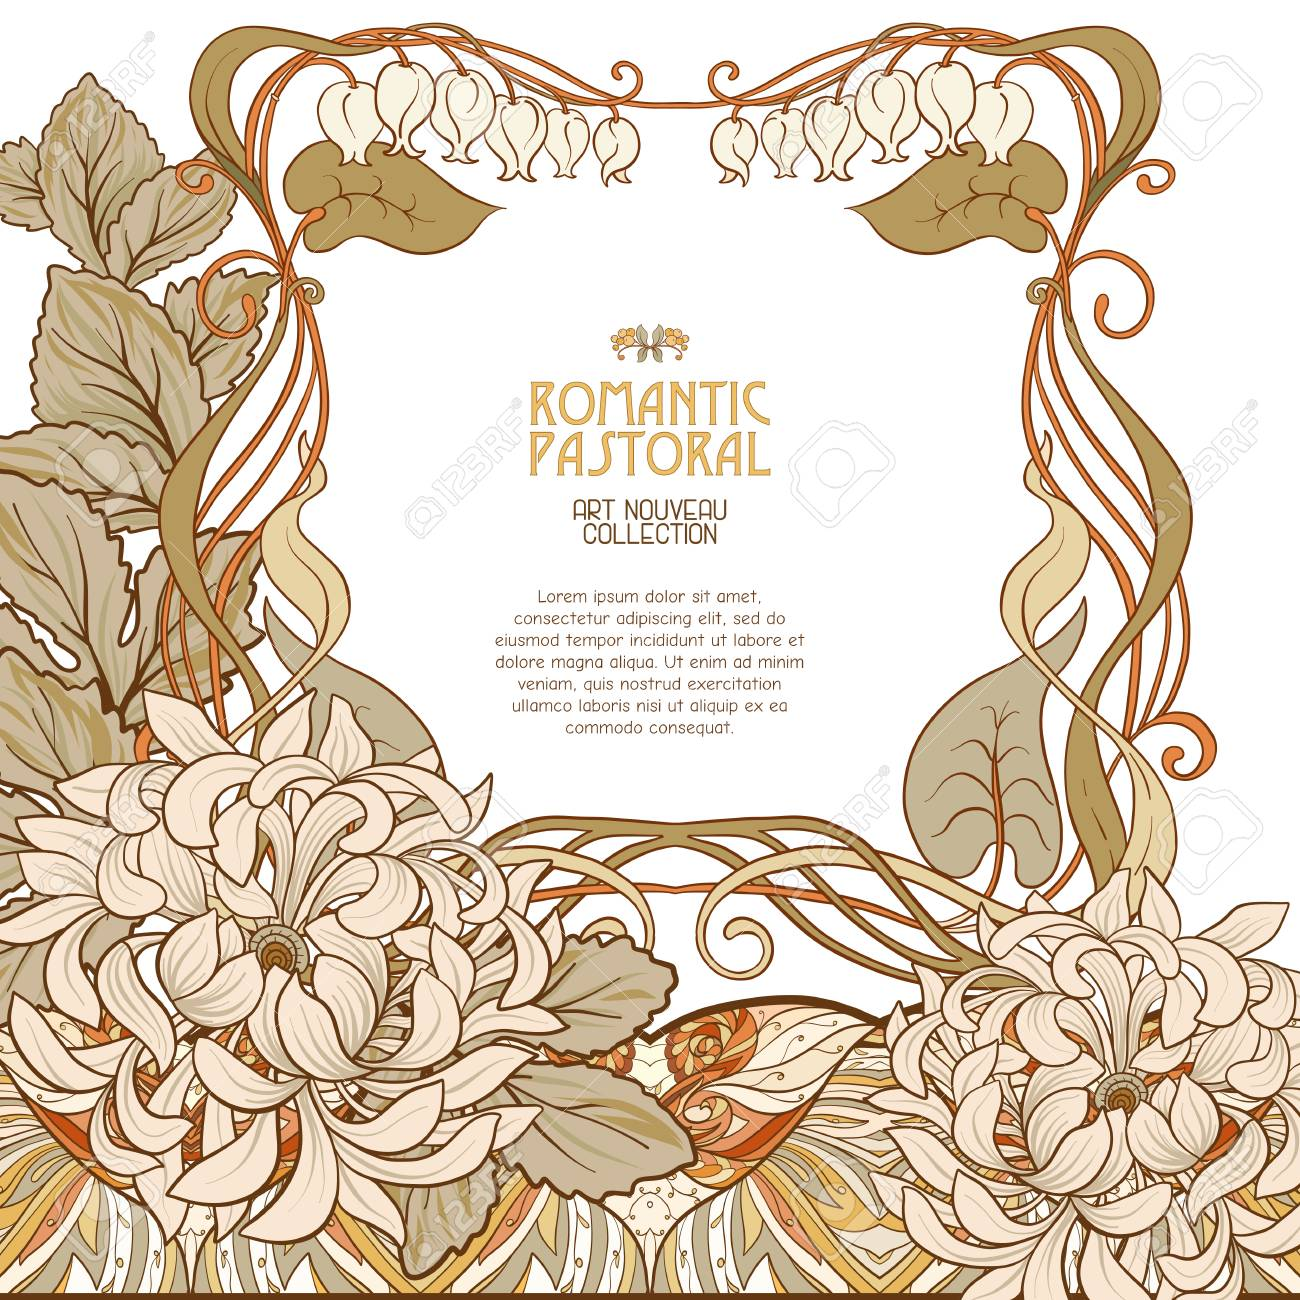 decorative flowers in art nouveau style